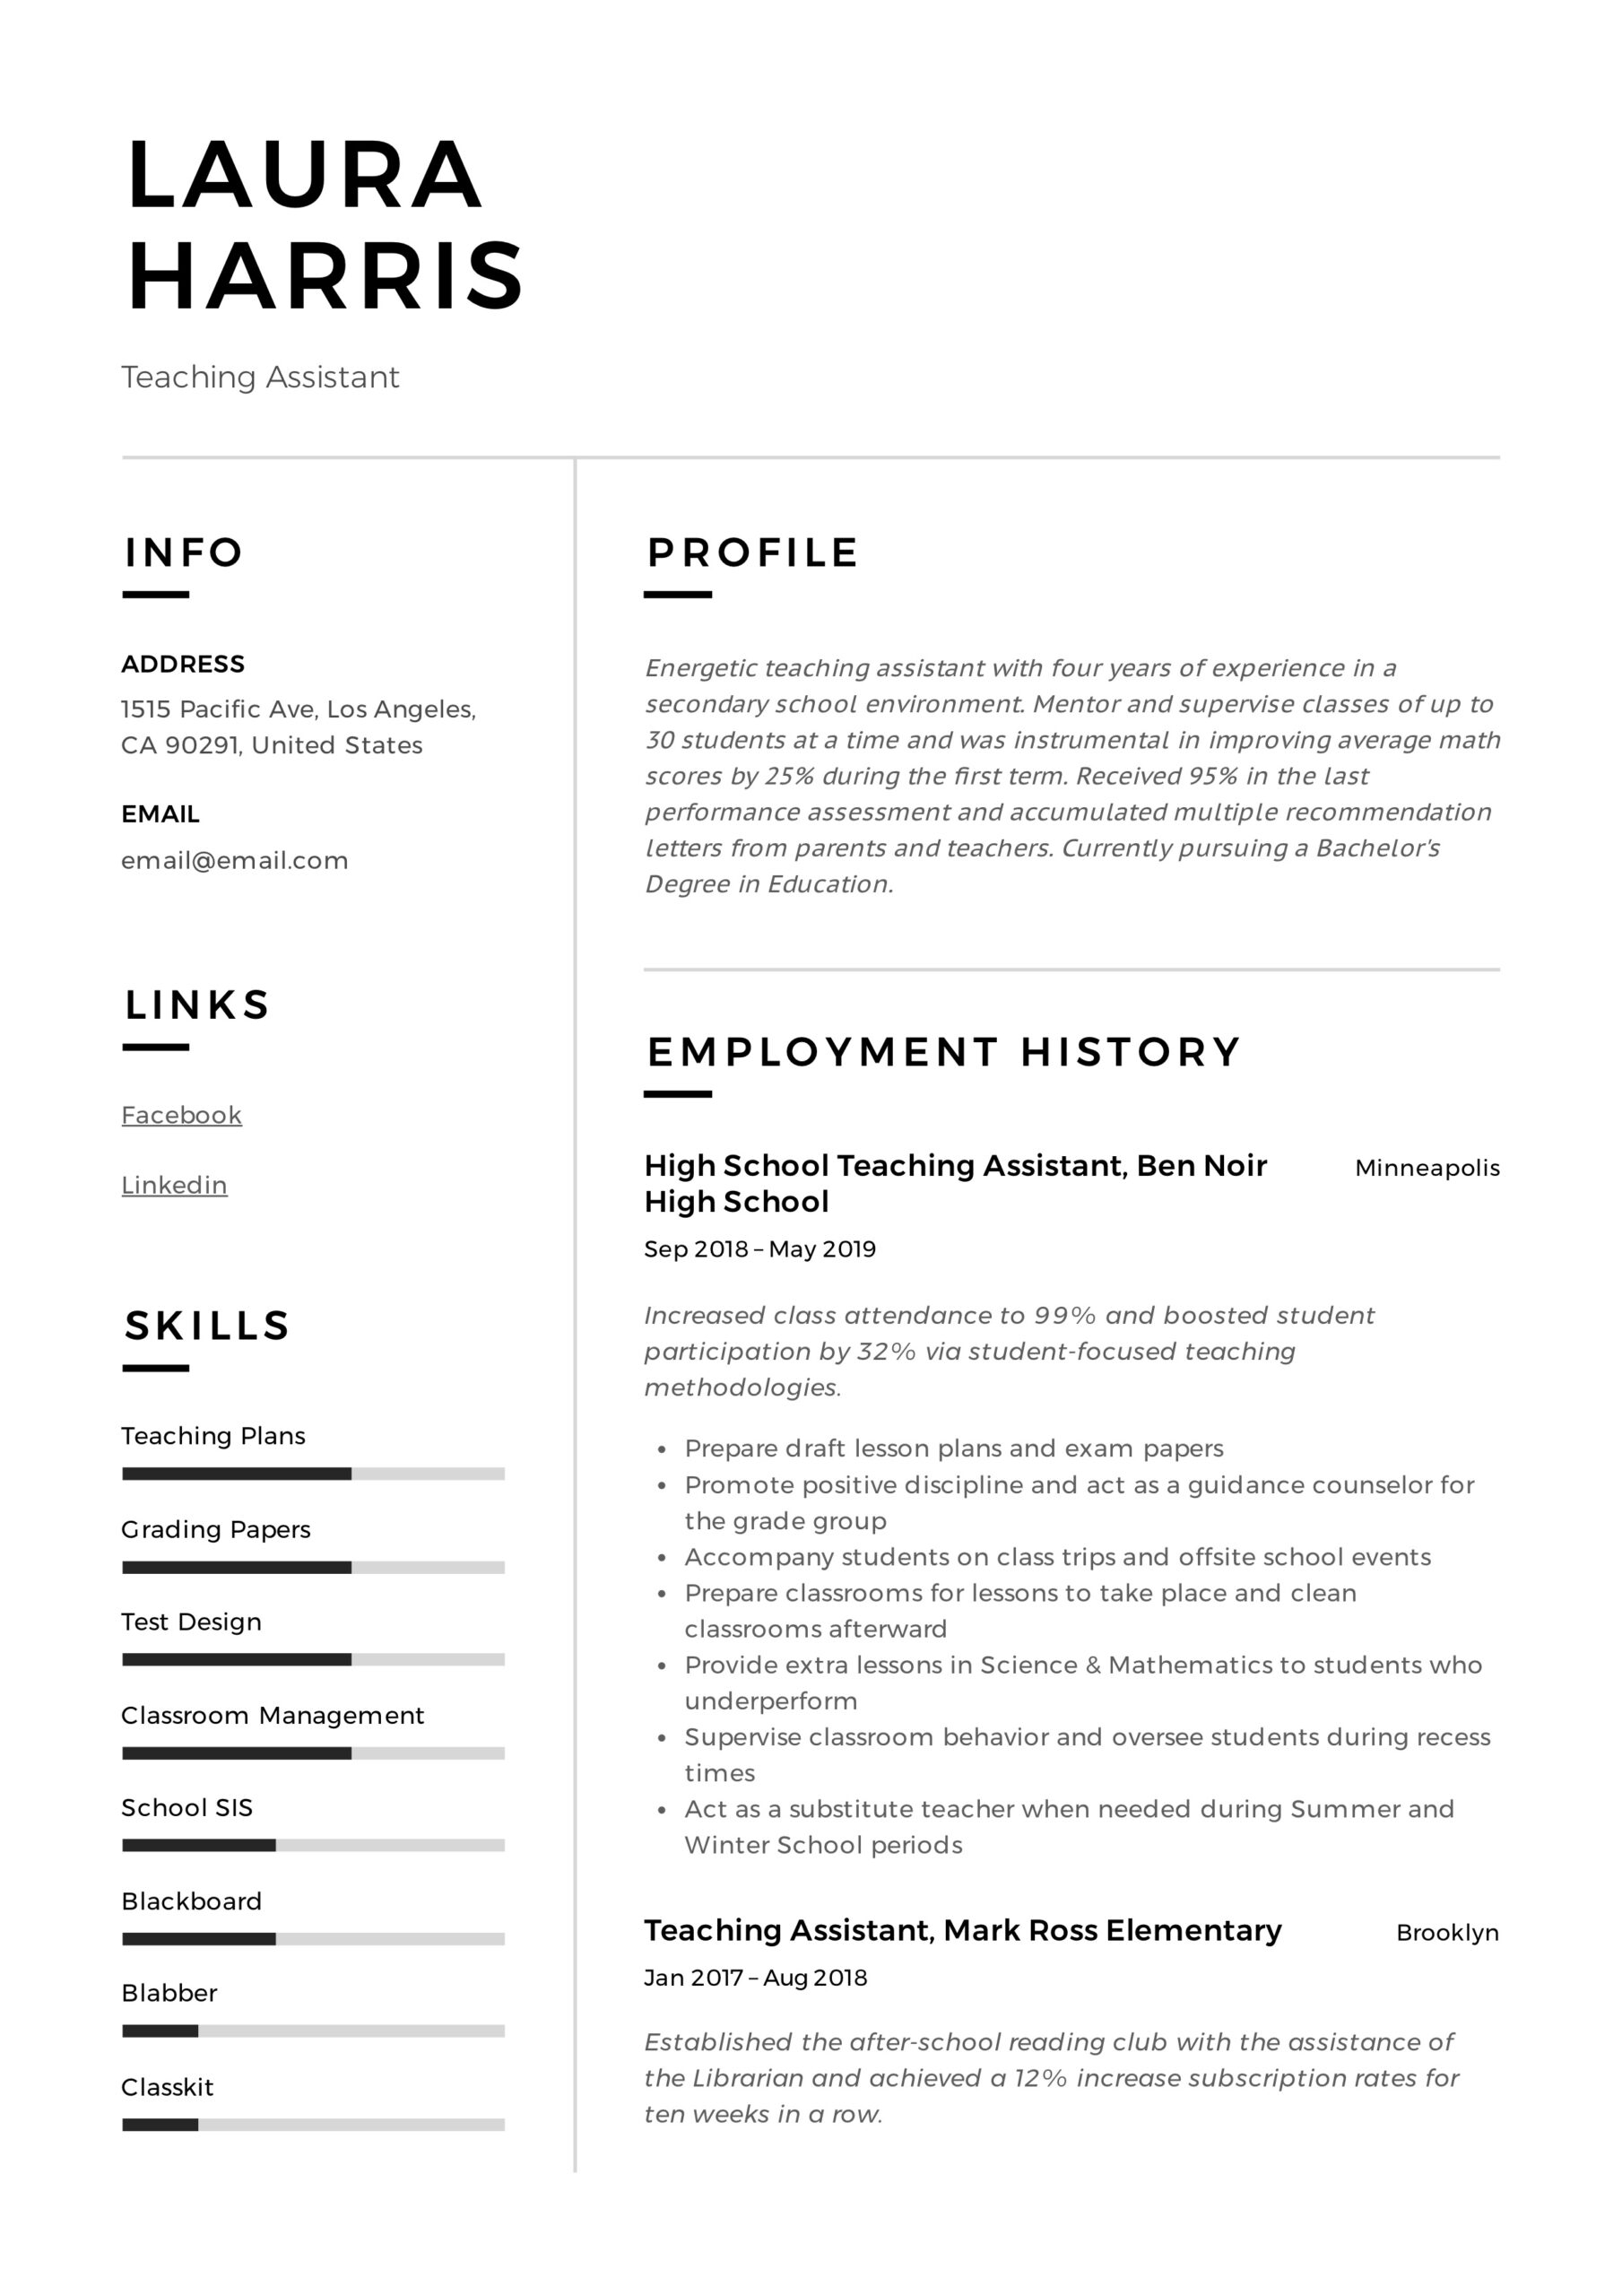 teaching assistant resume writing guide templates pdf paraprofessional skills template Resume Paraprofessional Resume Skills